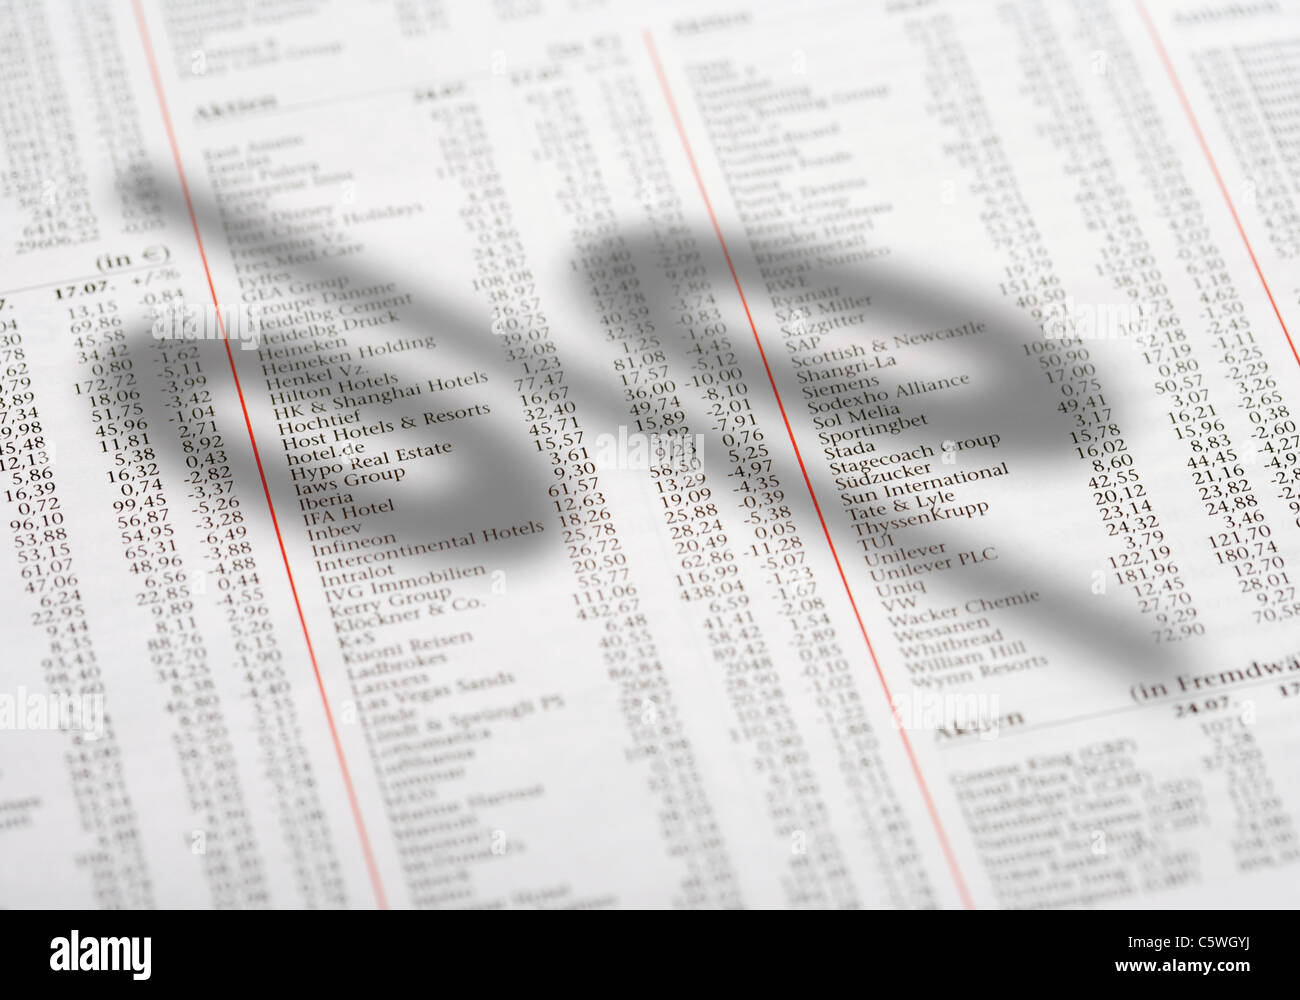 Percentage sign on newspaper with share prices - Stock Image